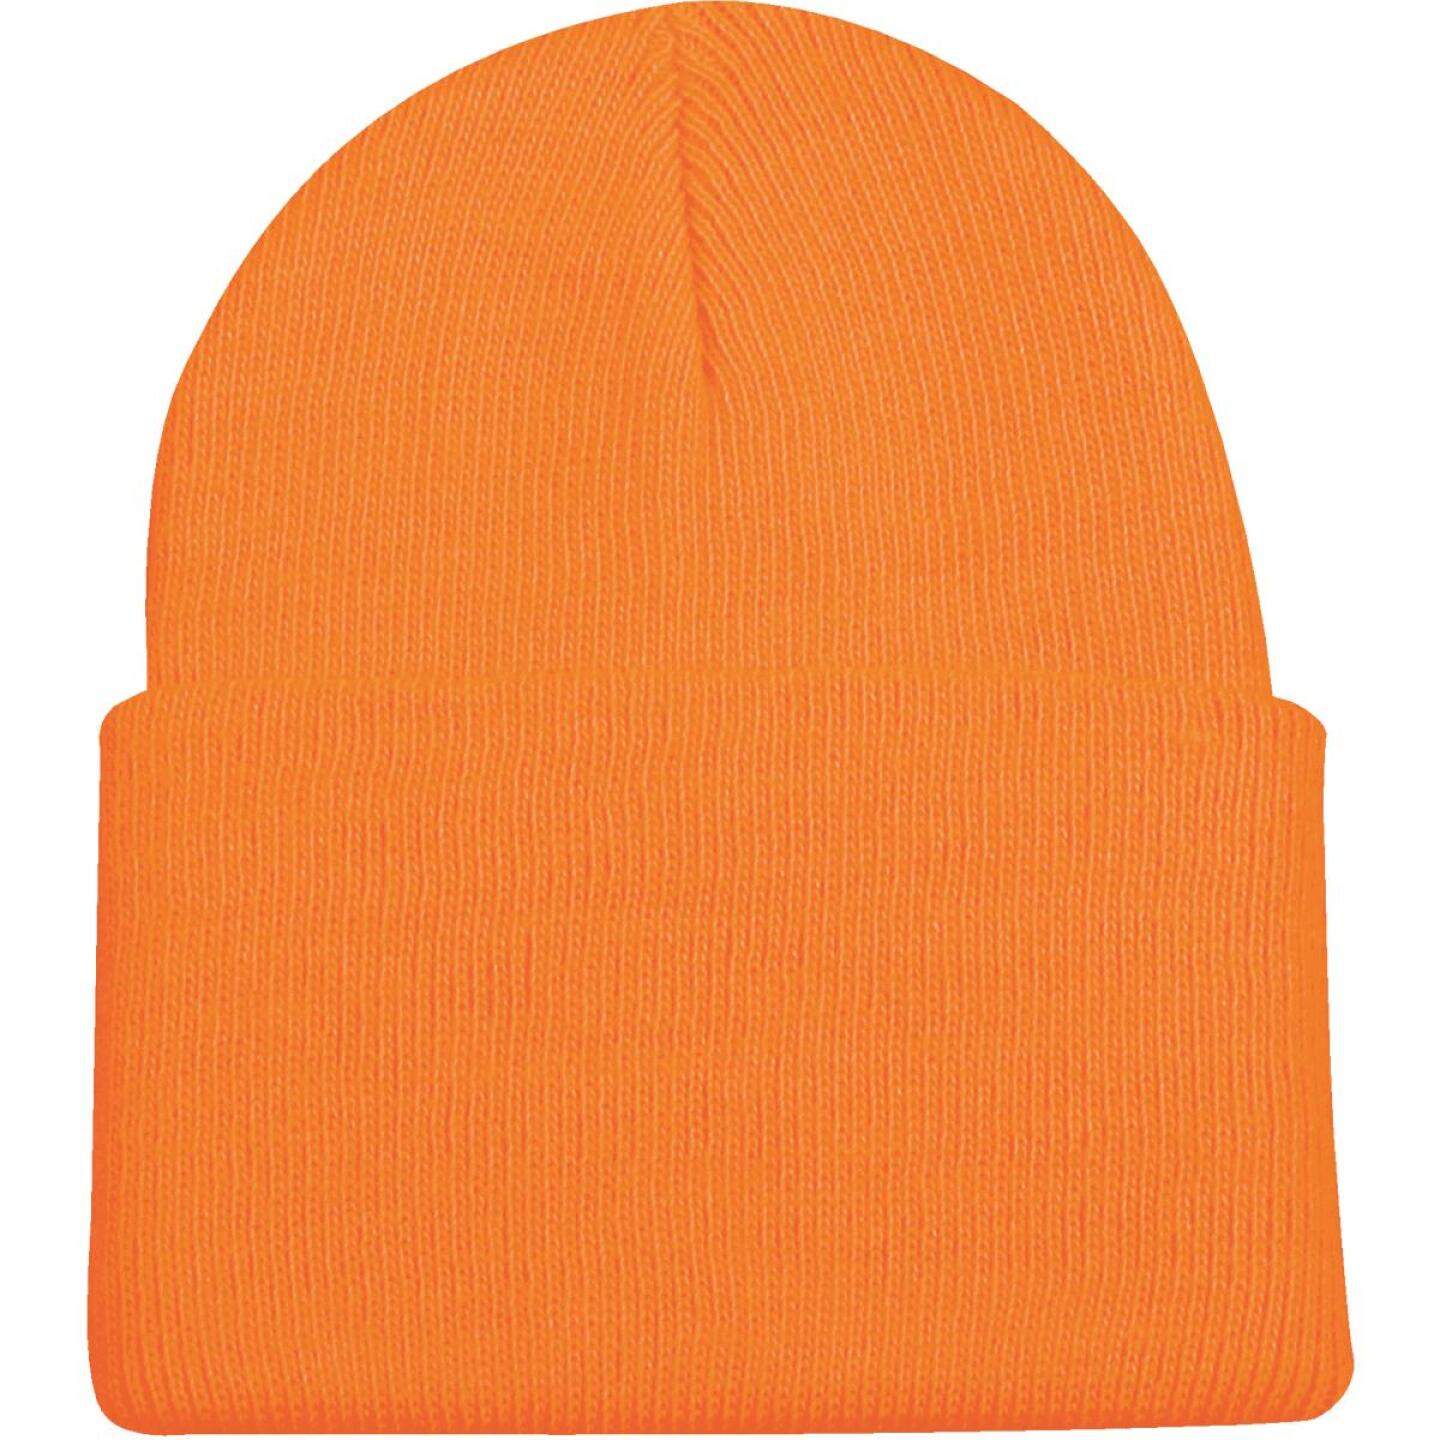 Outdoor Cap Blaze Orange Cuffed Sock Cap Image 2